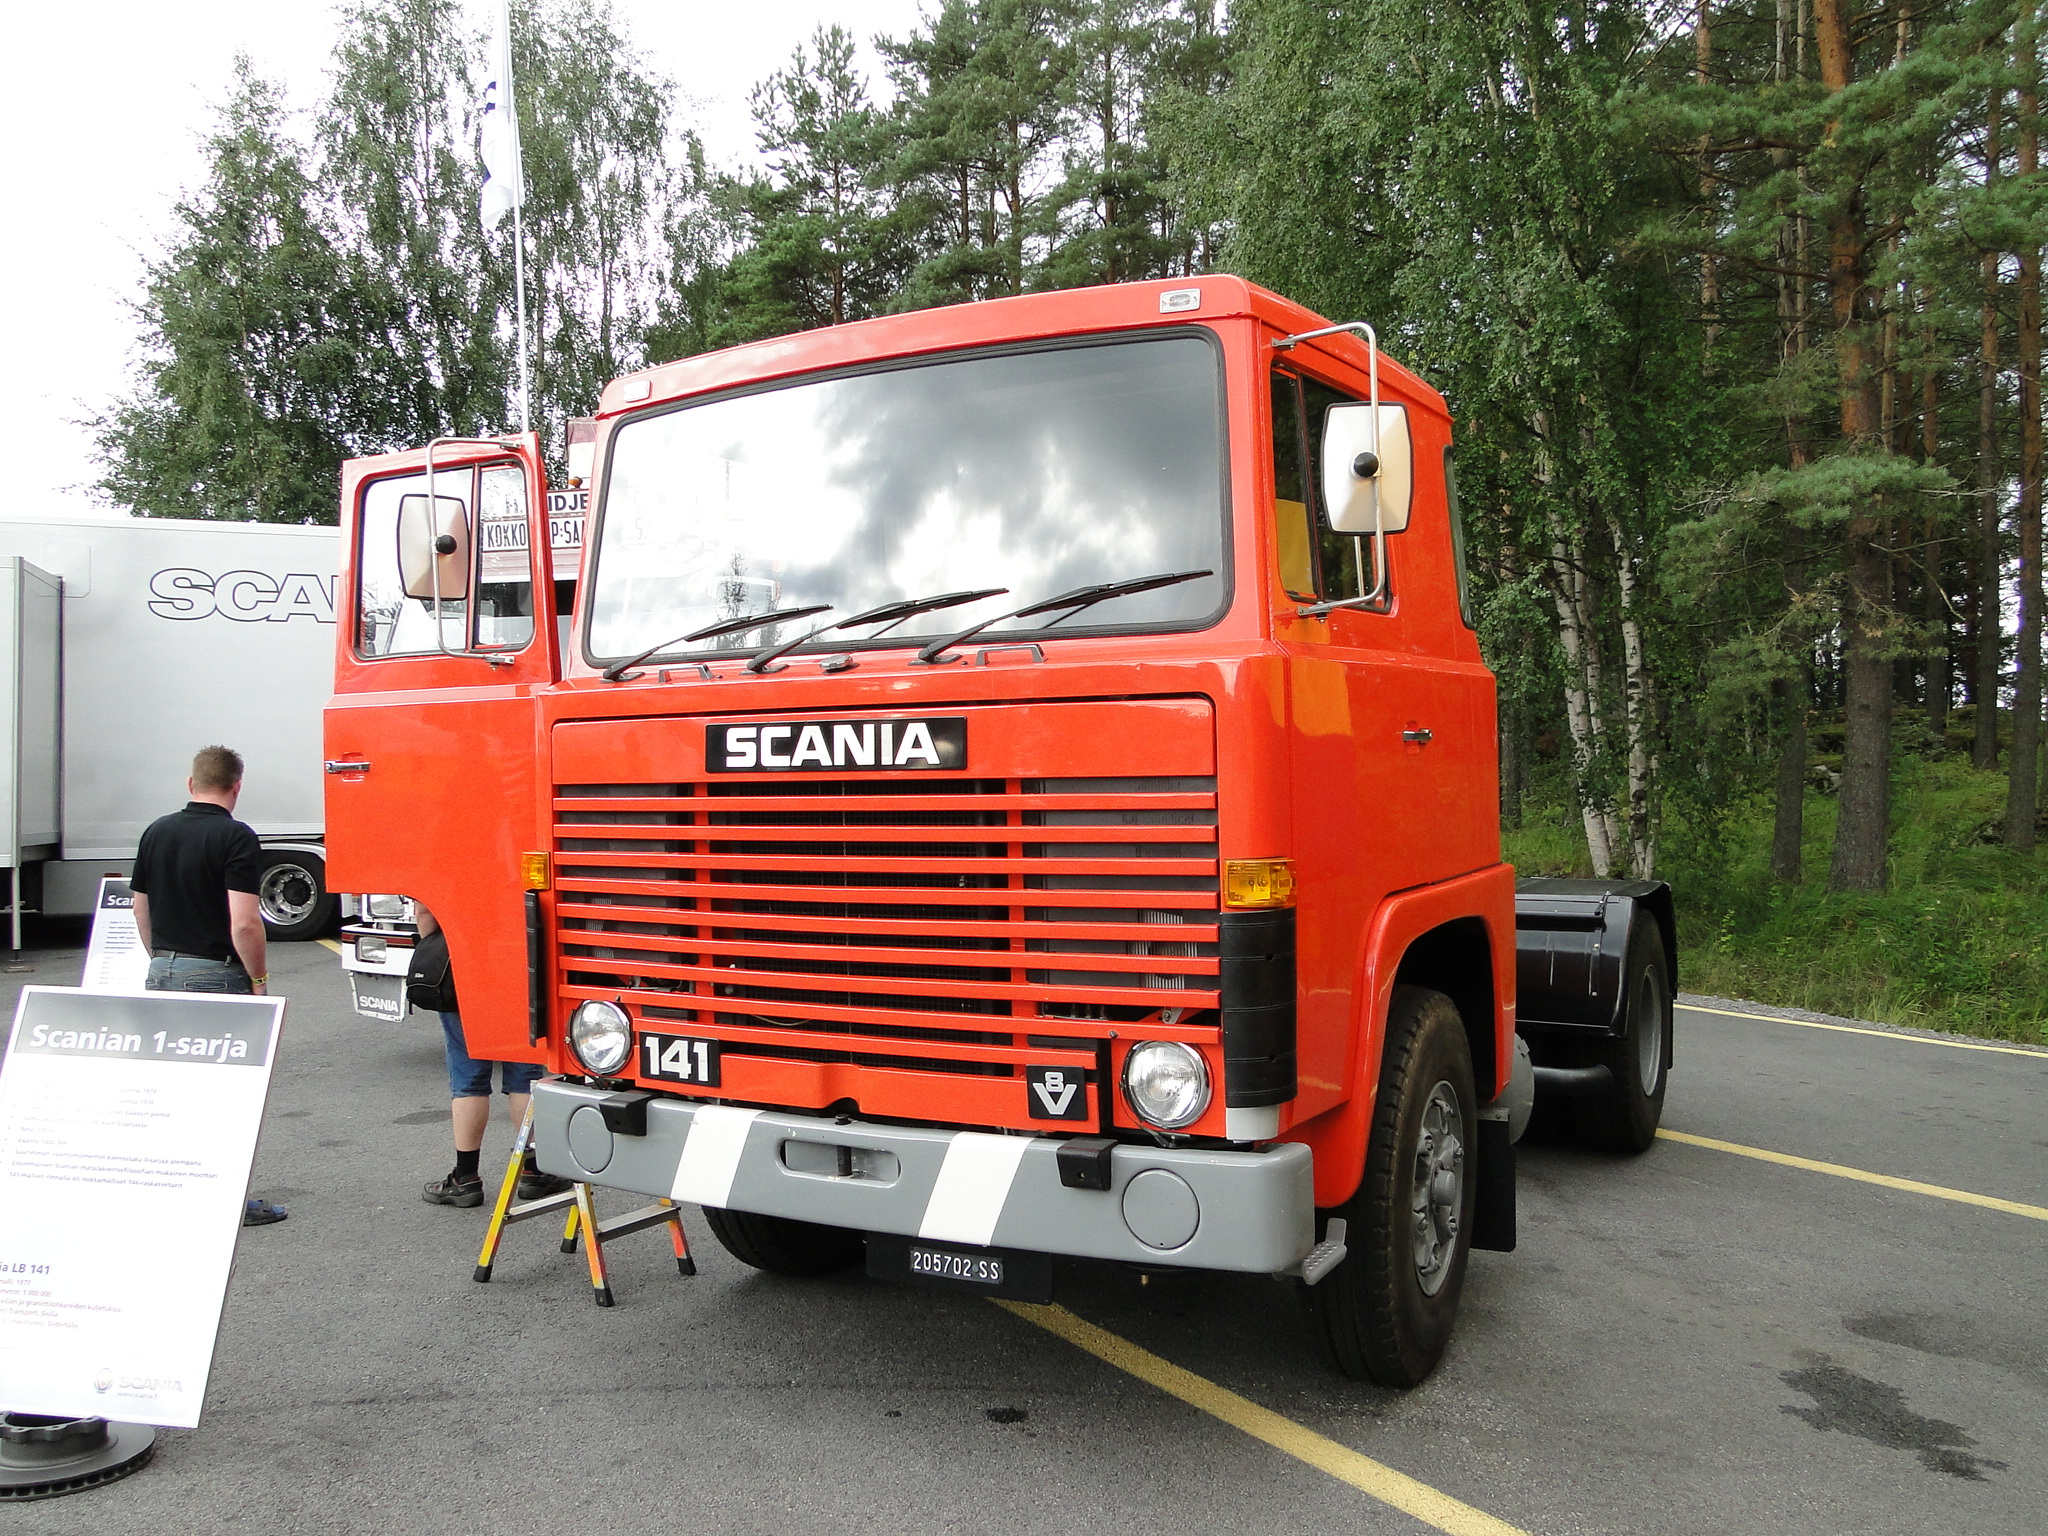 File Scania Lb 141 Jpg Wikimedia Commons